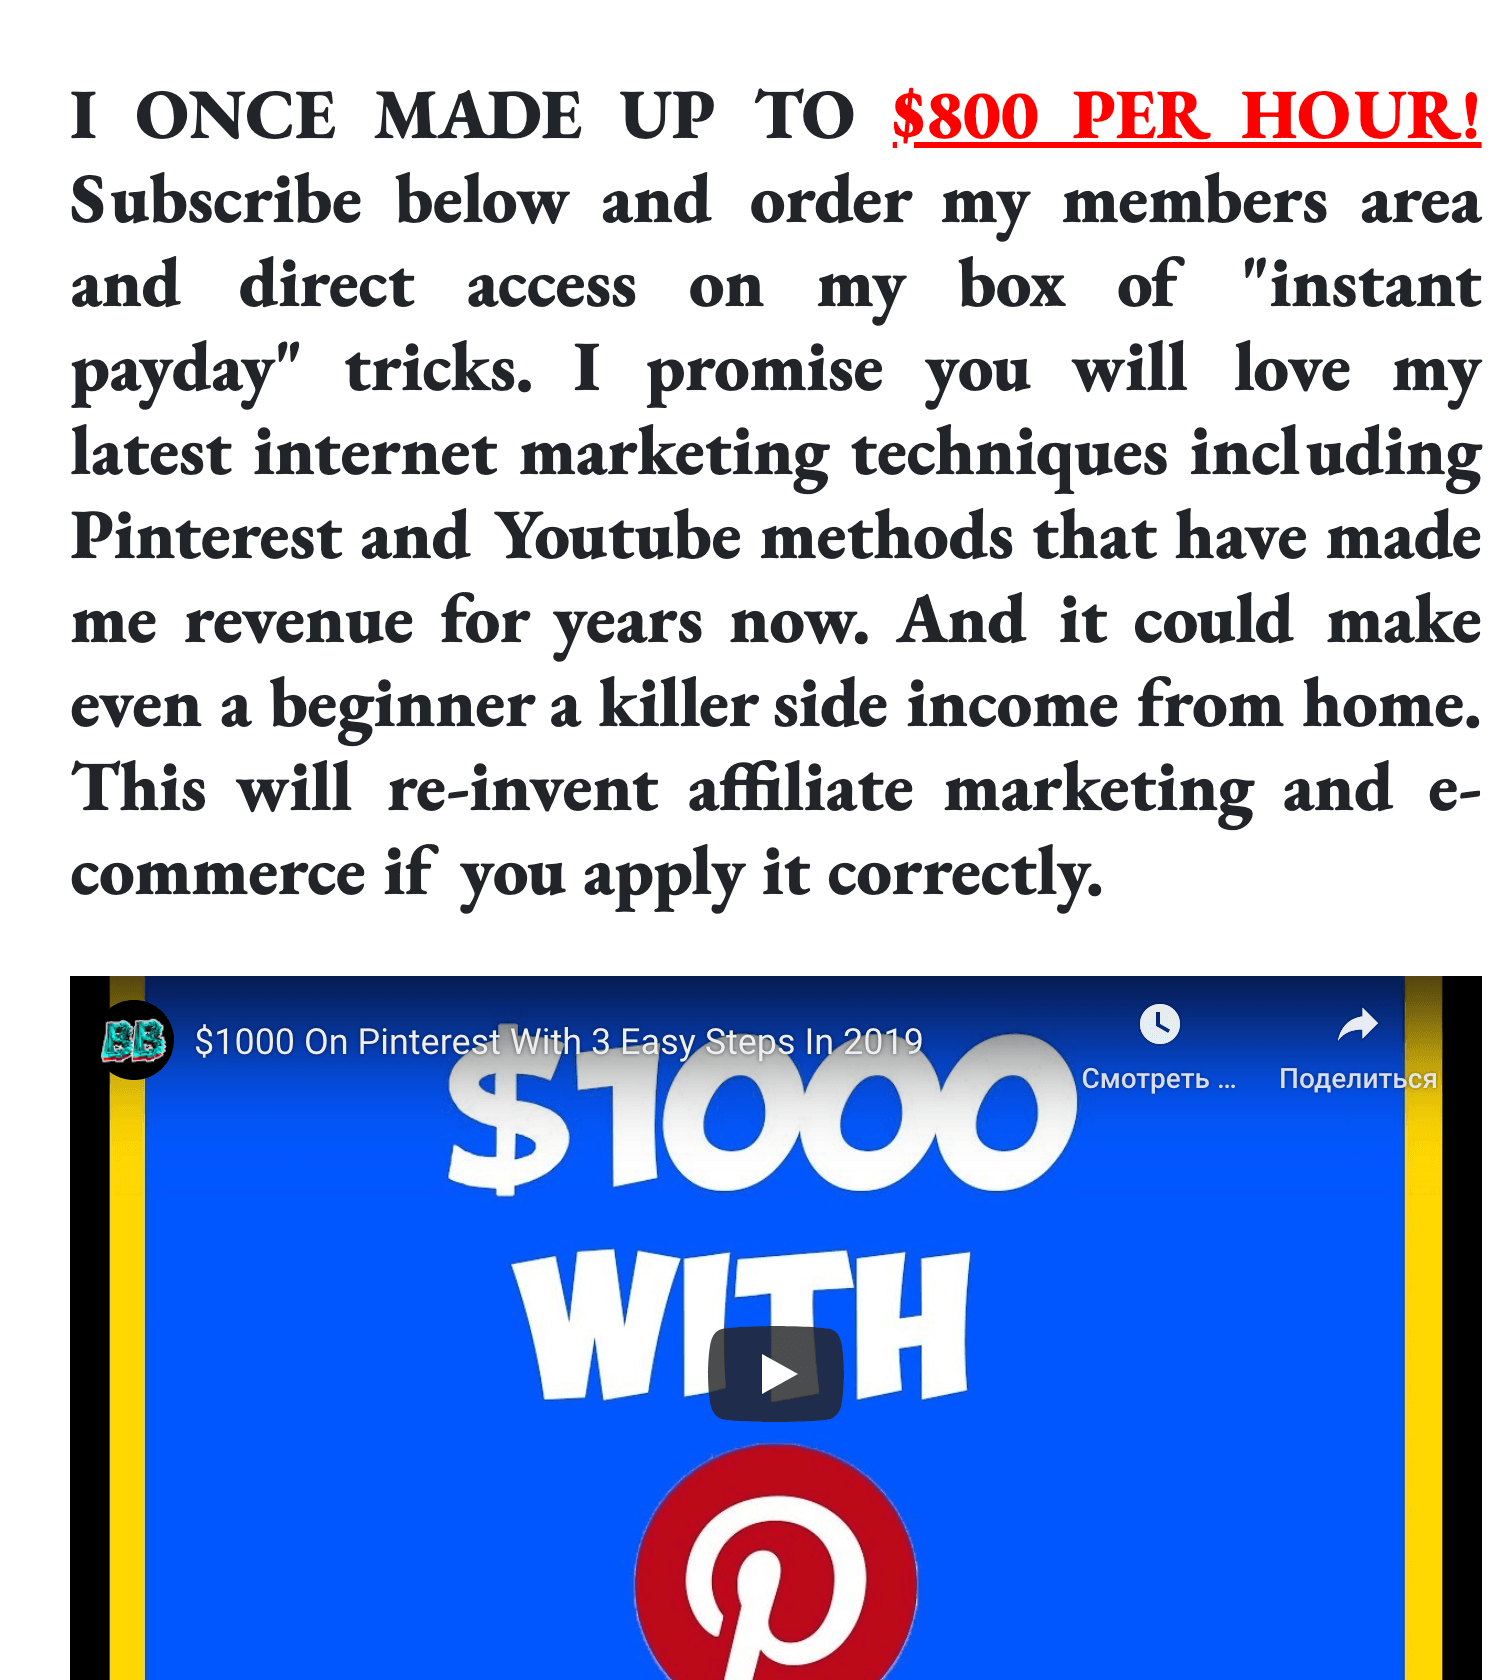 Instant-payday-tricks-webpage